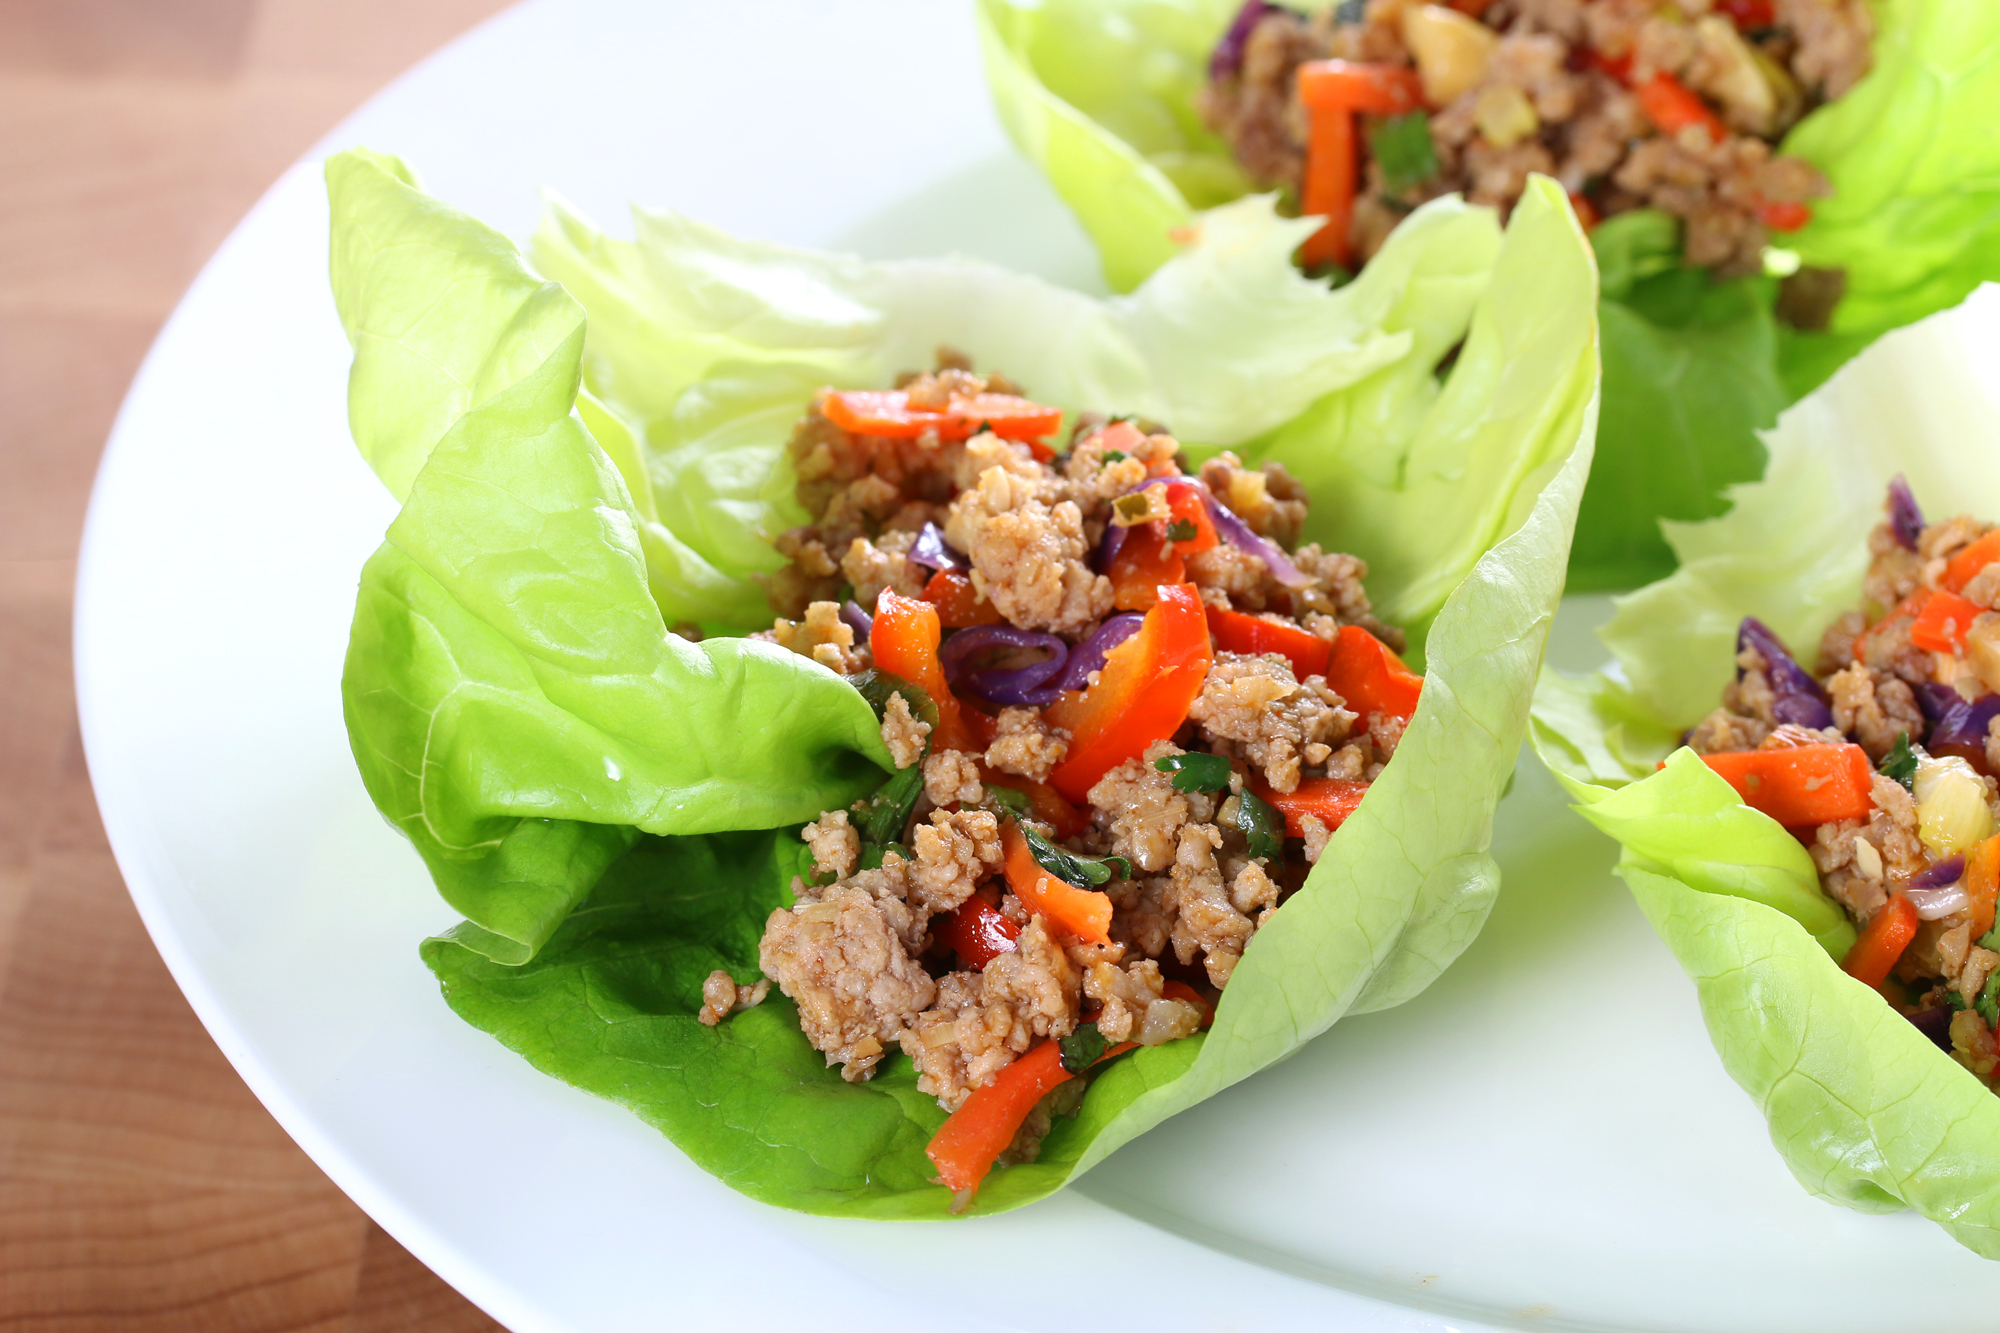 Veal-Thai-Lettuce-Wraps.jpg